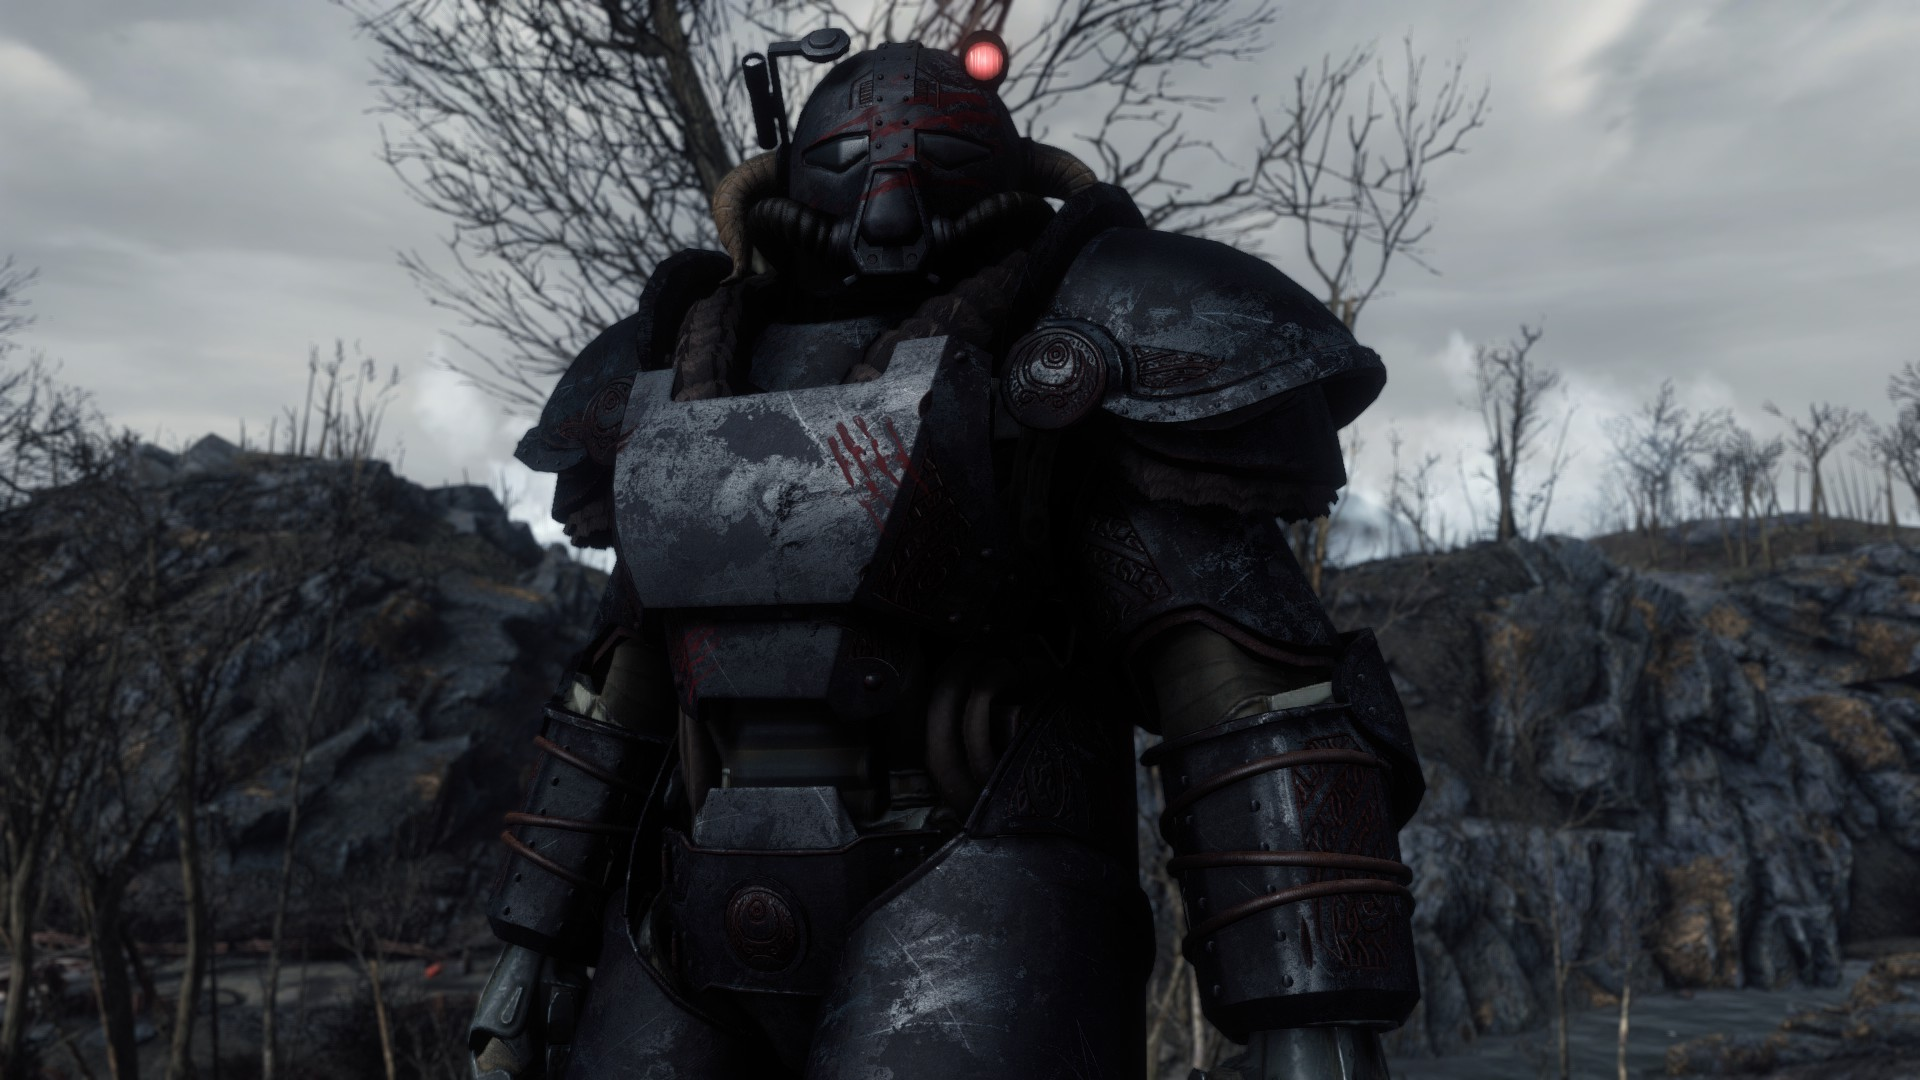 dragonborn power armor in fallout 4 the elder scrolls know your meme